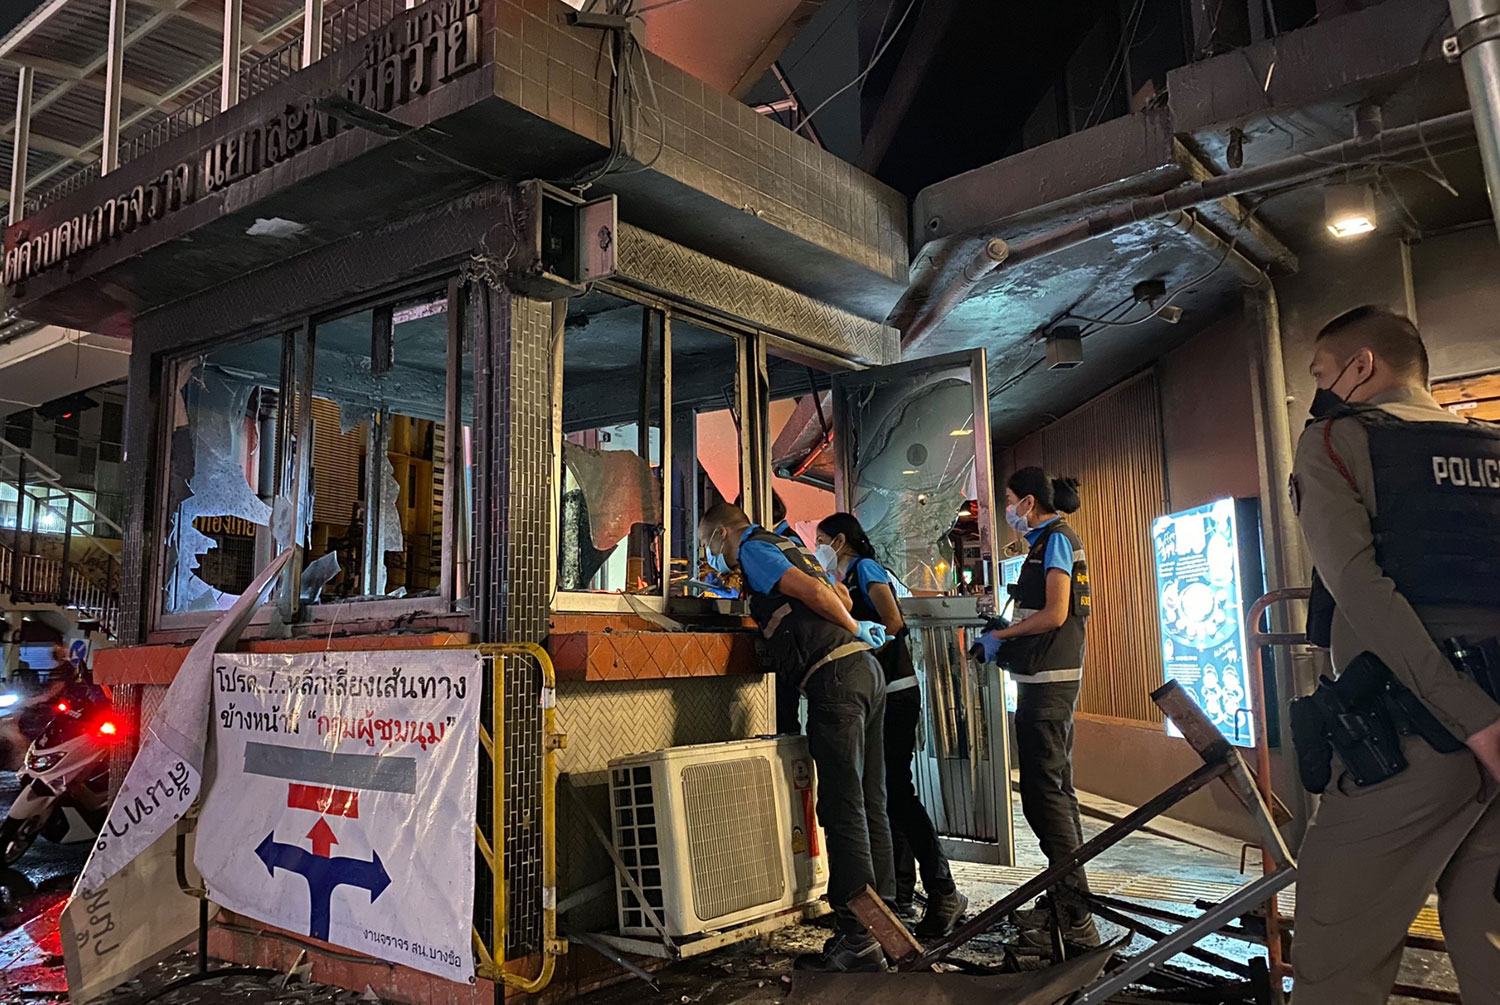 Four police booths torched, another damaged